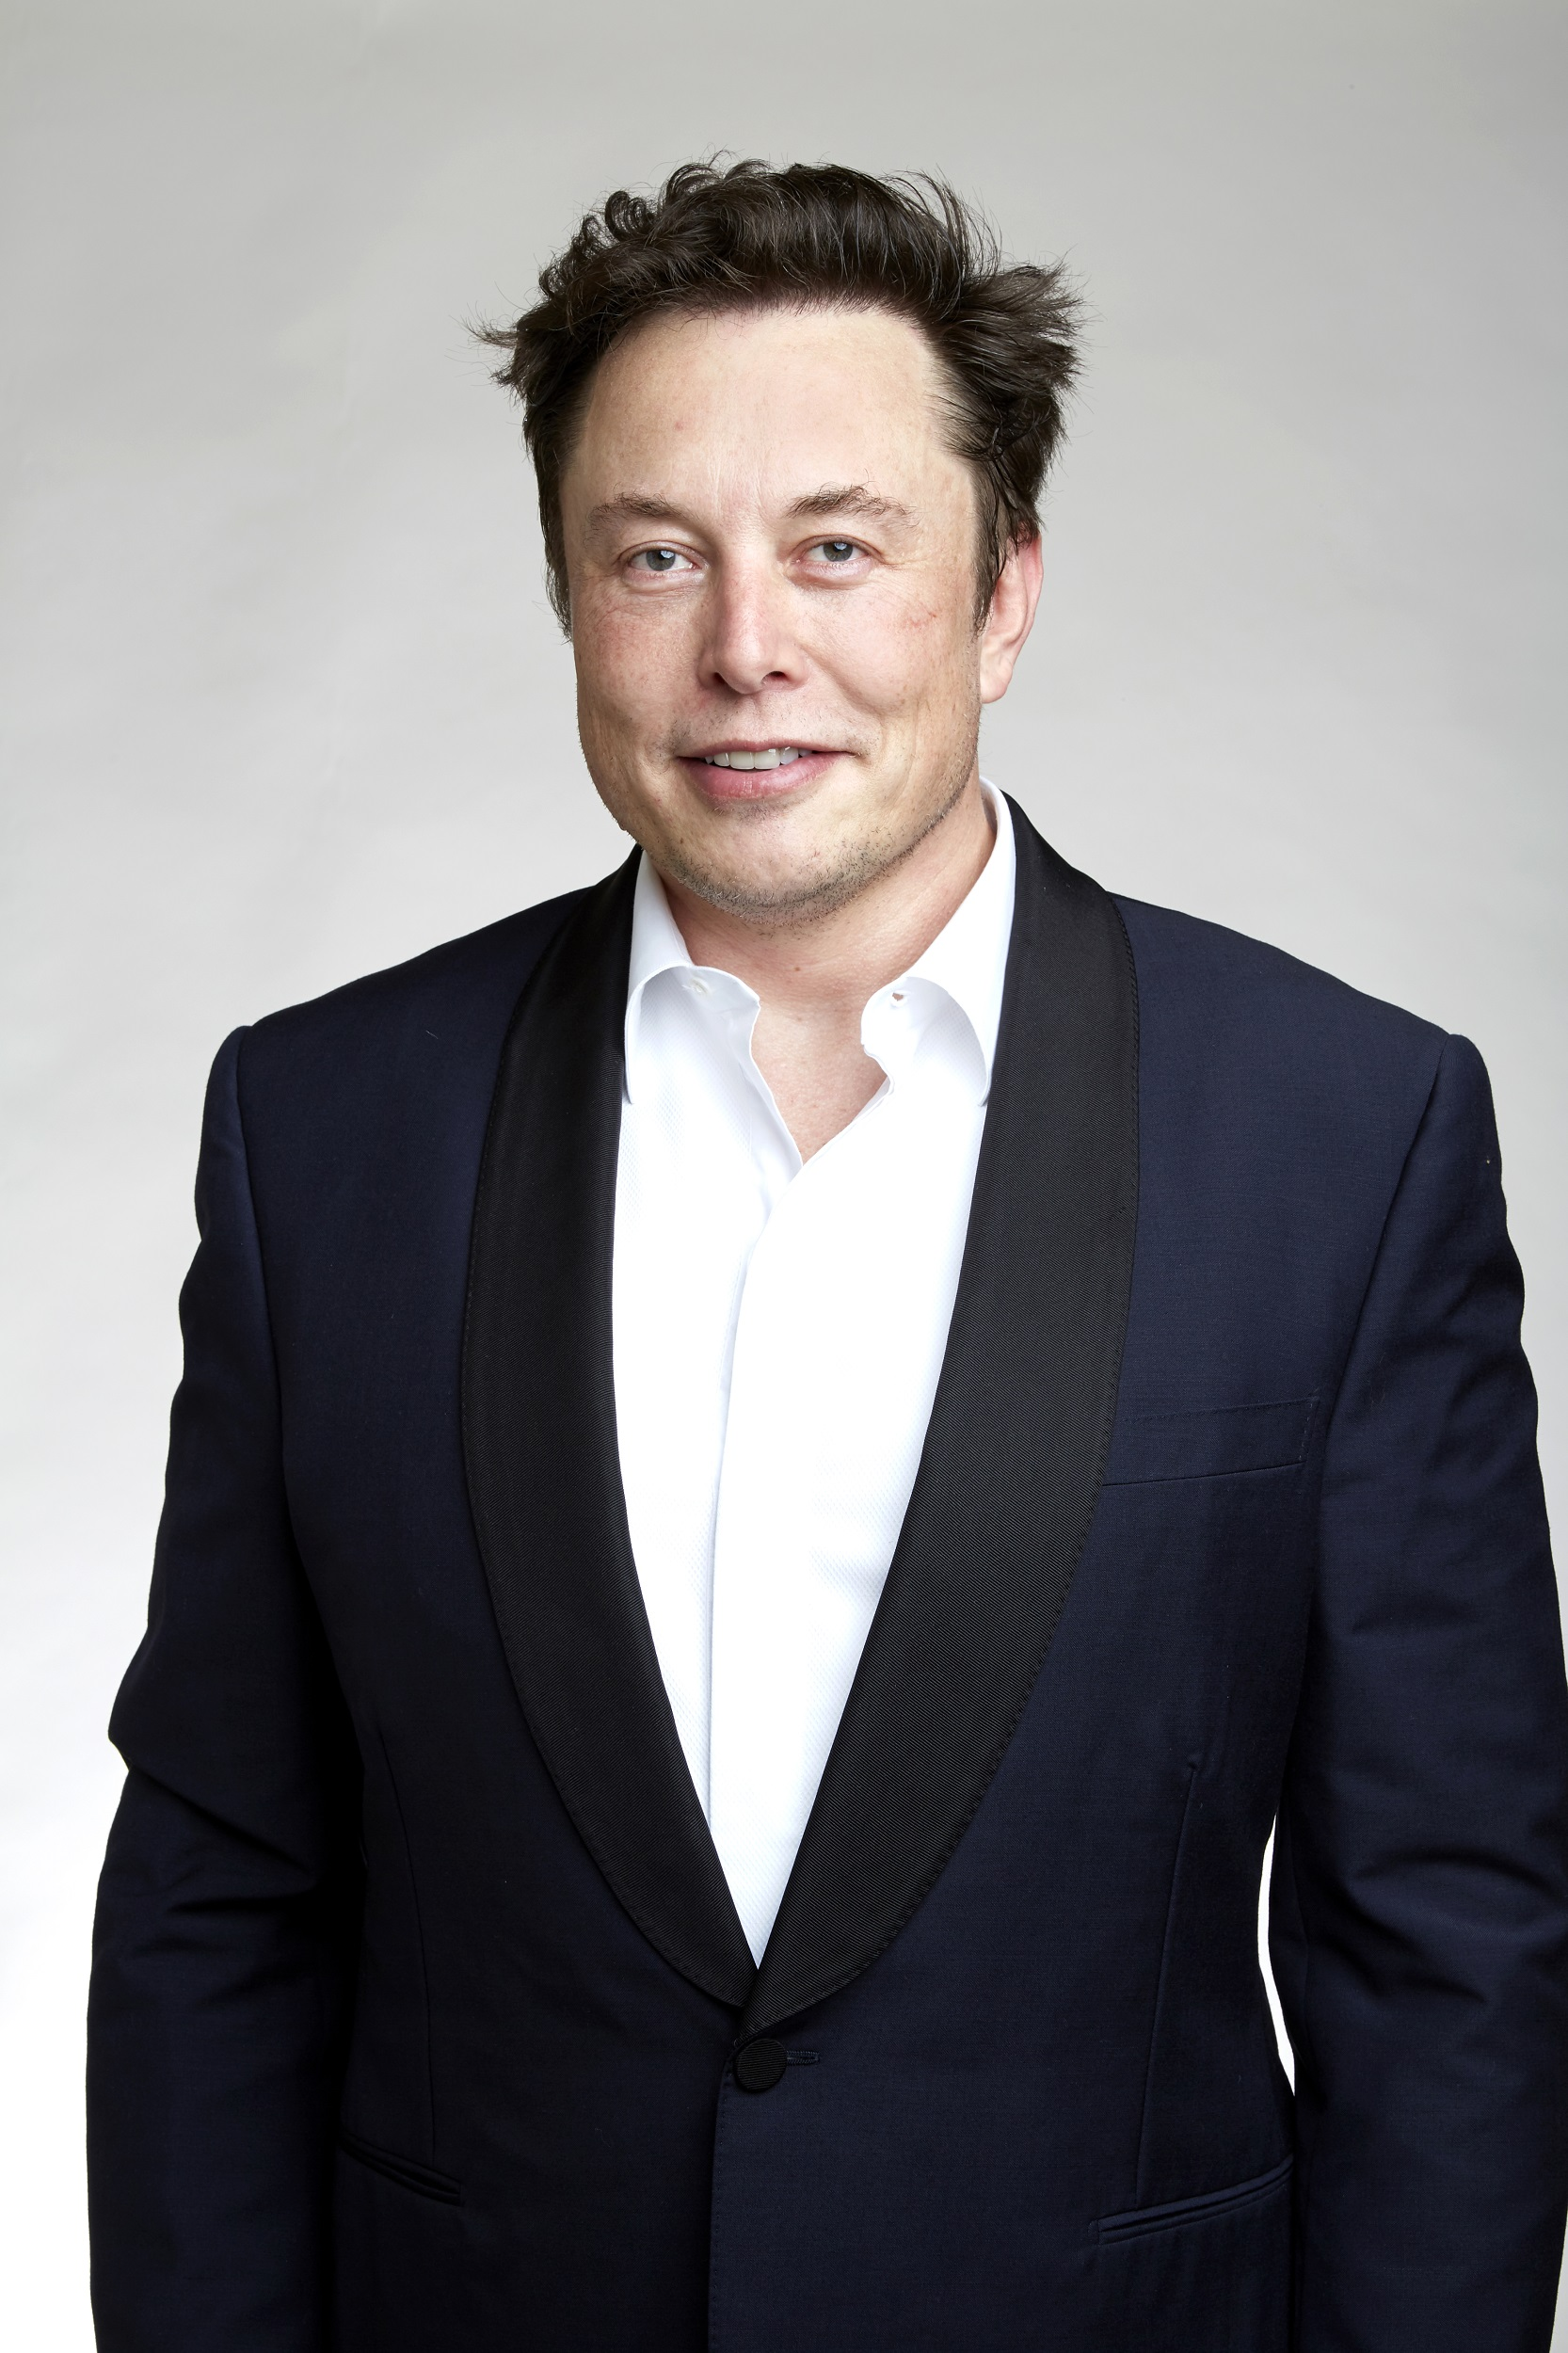 https://upload.wikimedia.org/wikipedia/commons/e/ed/Elon_Musk_Royal_Society.jpg